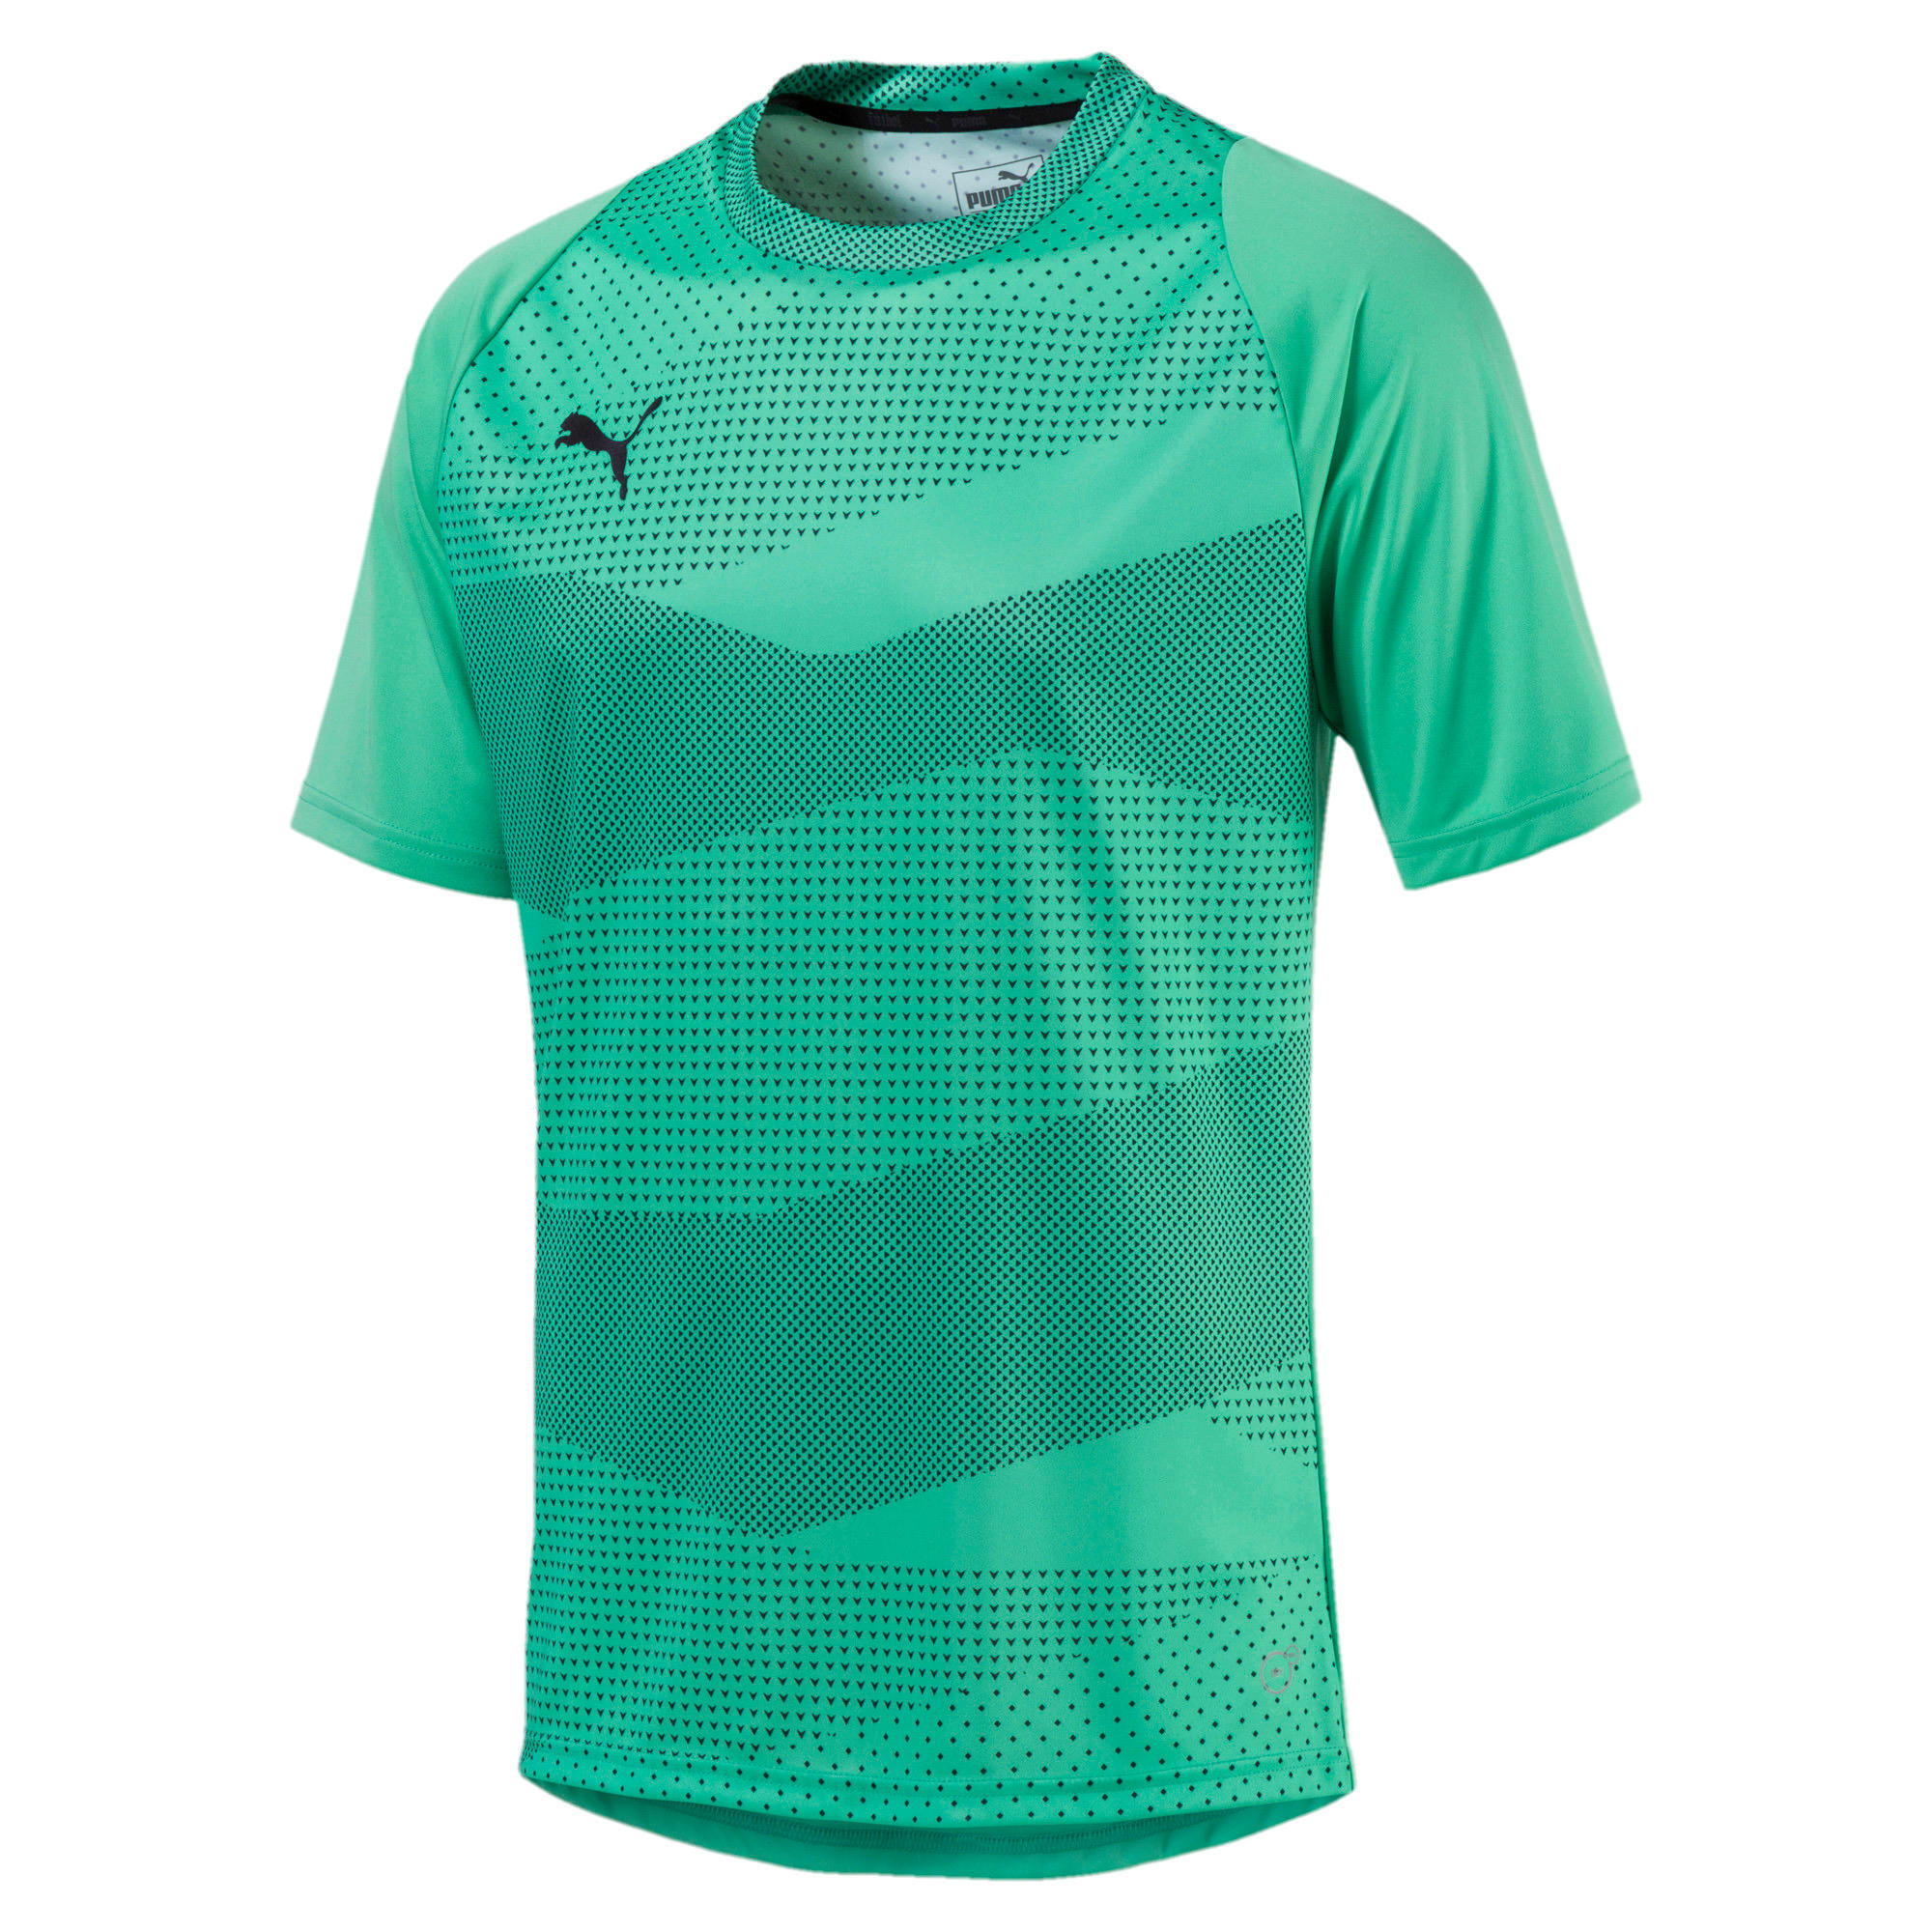 Thumbnail 1 of ftblNXT Graphic Core Men's Training Top, Biscay Green-Iron Gate, medium